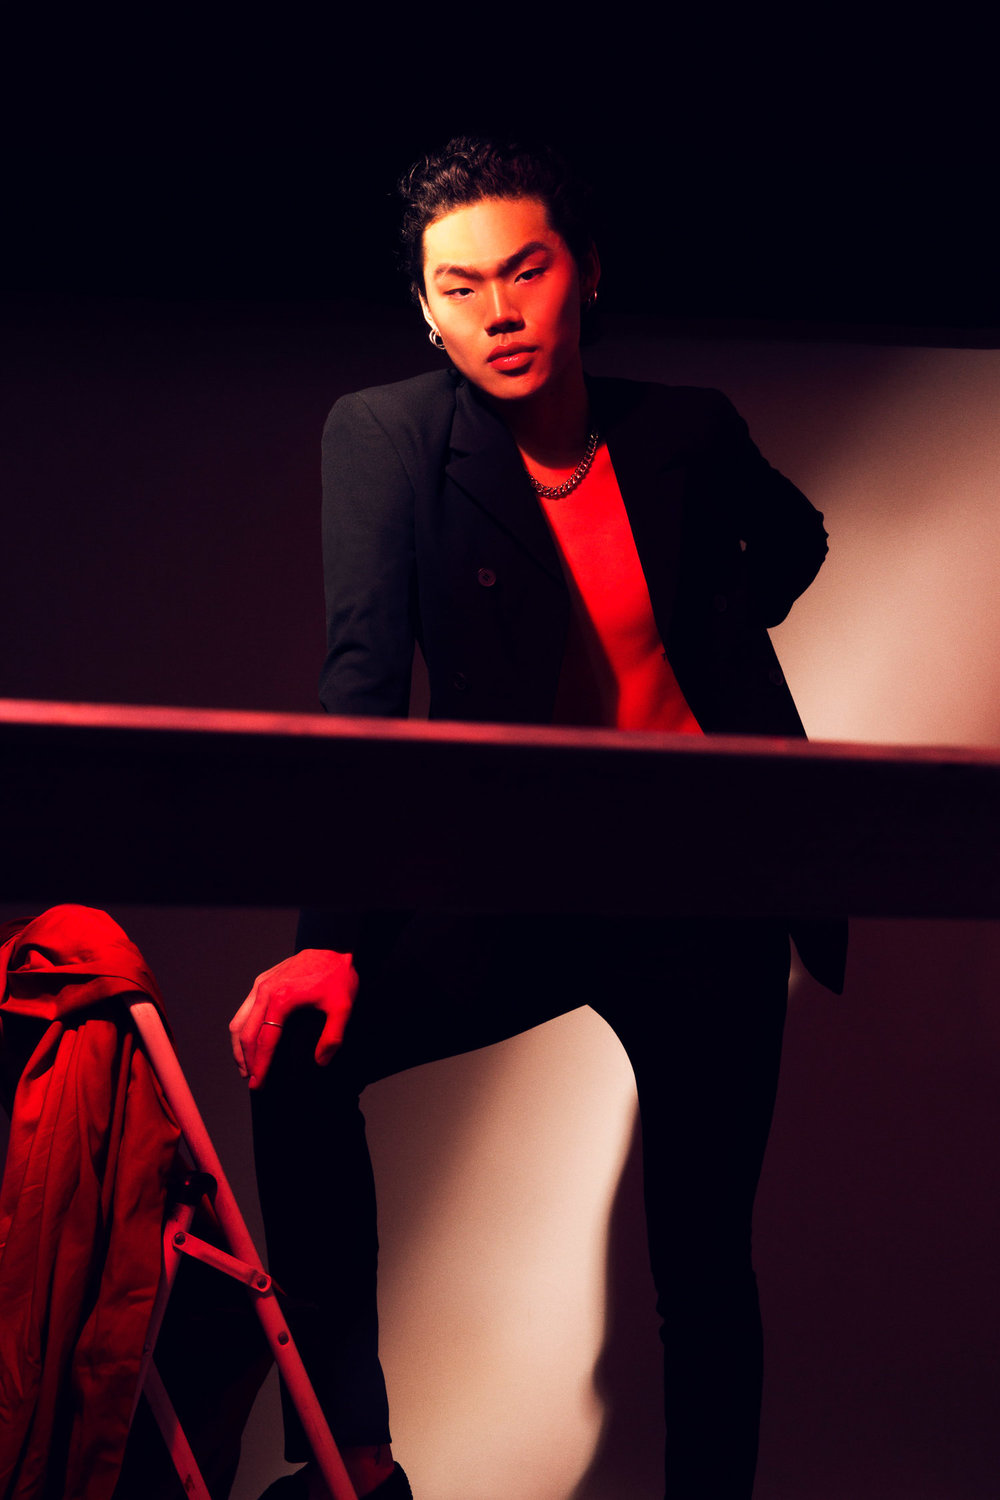 Portrait of an asian model in red light.